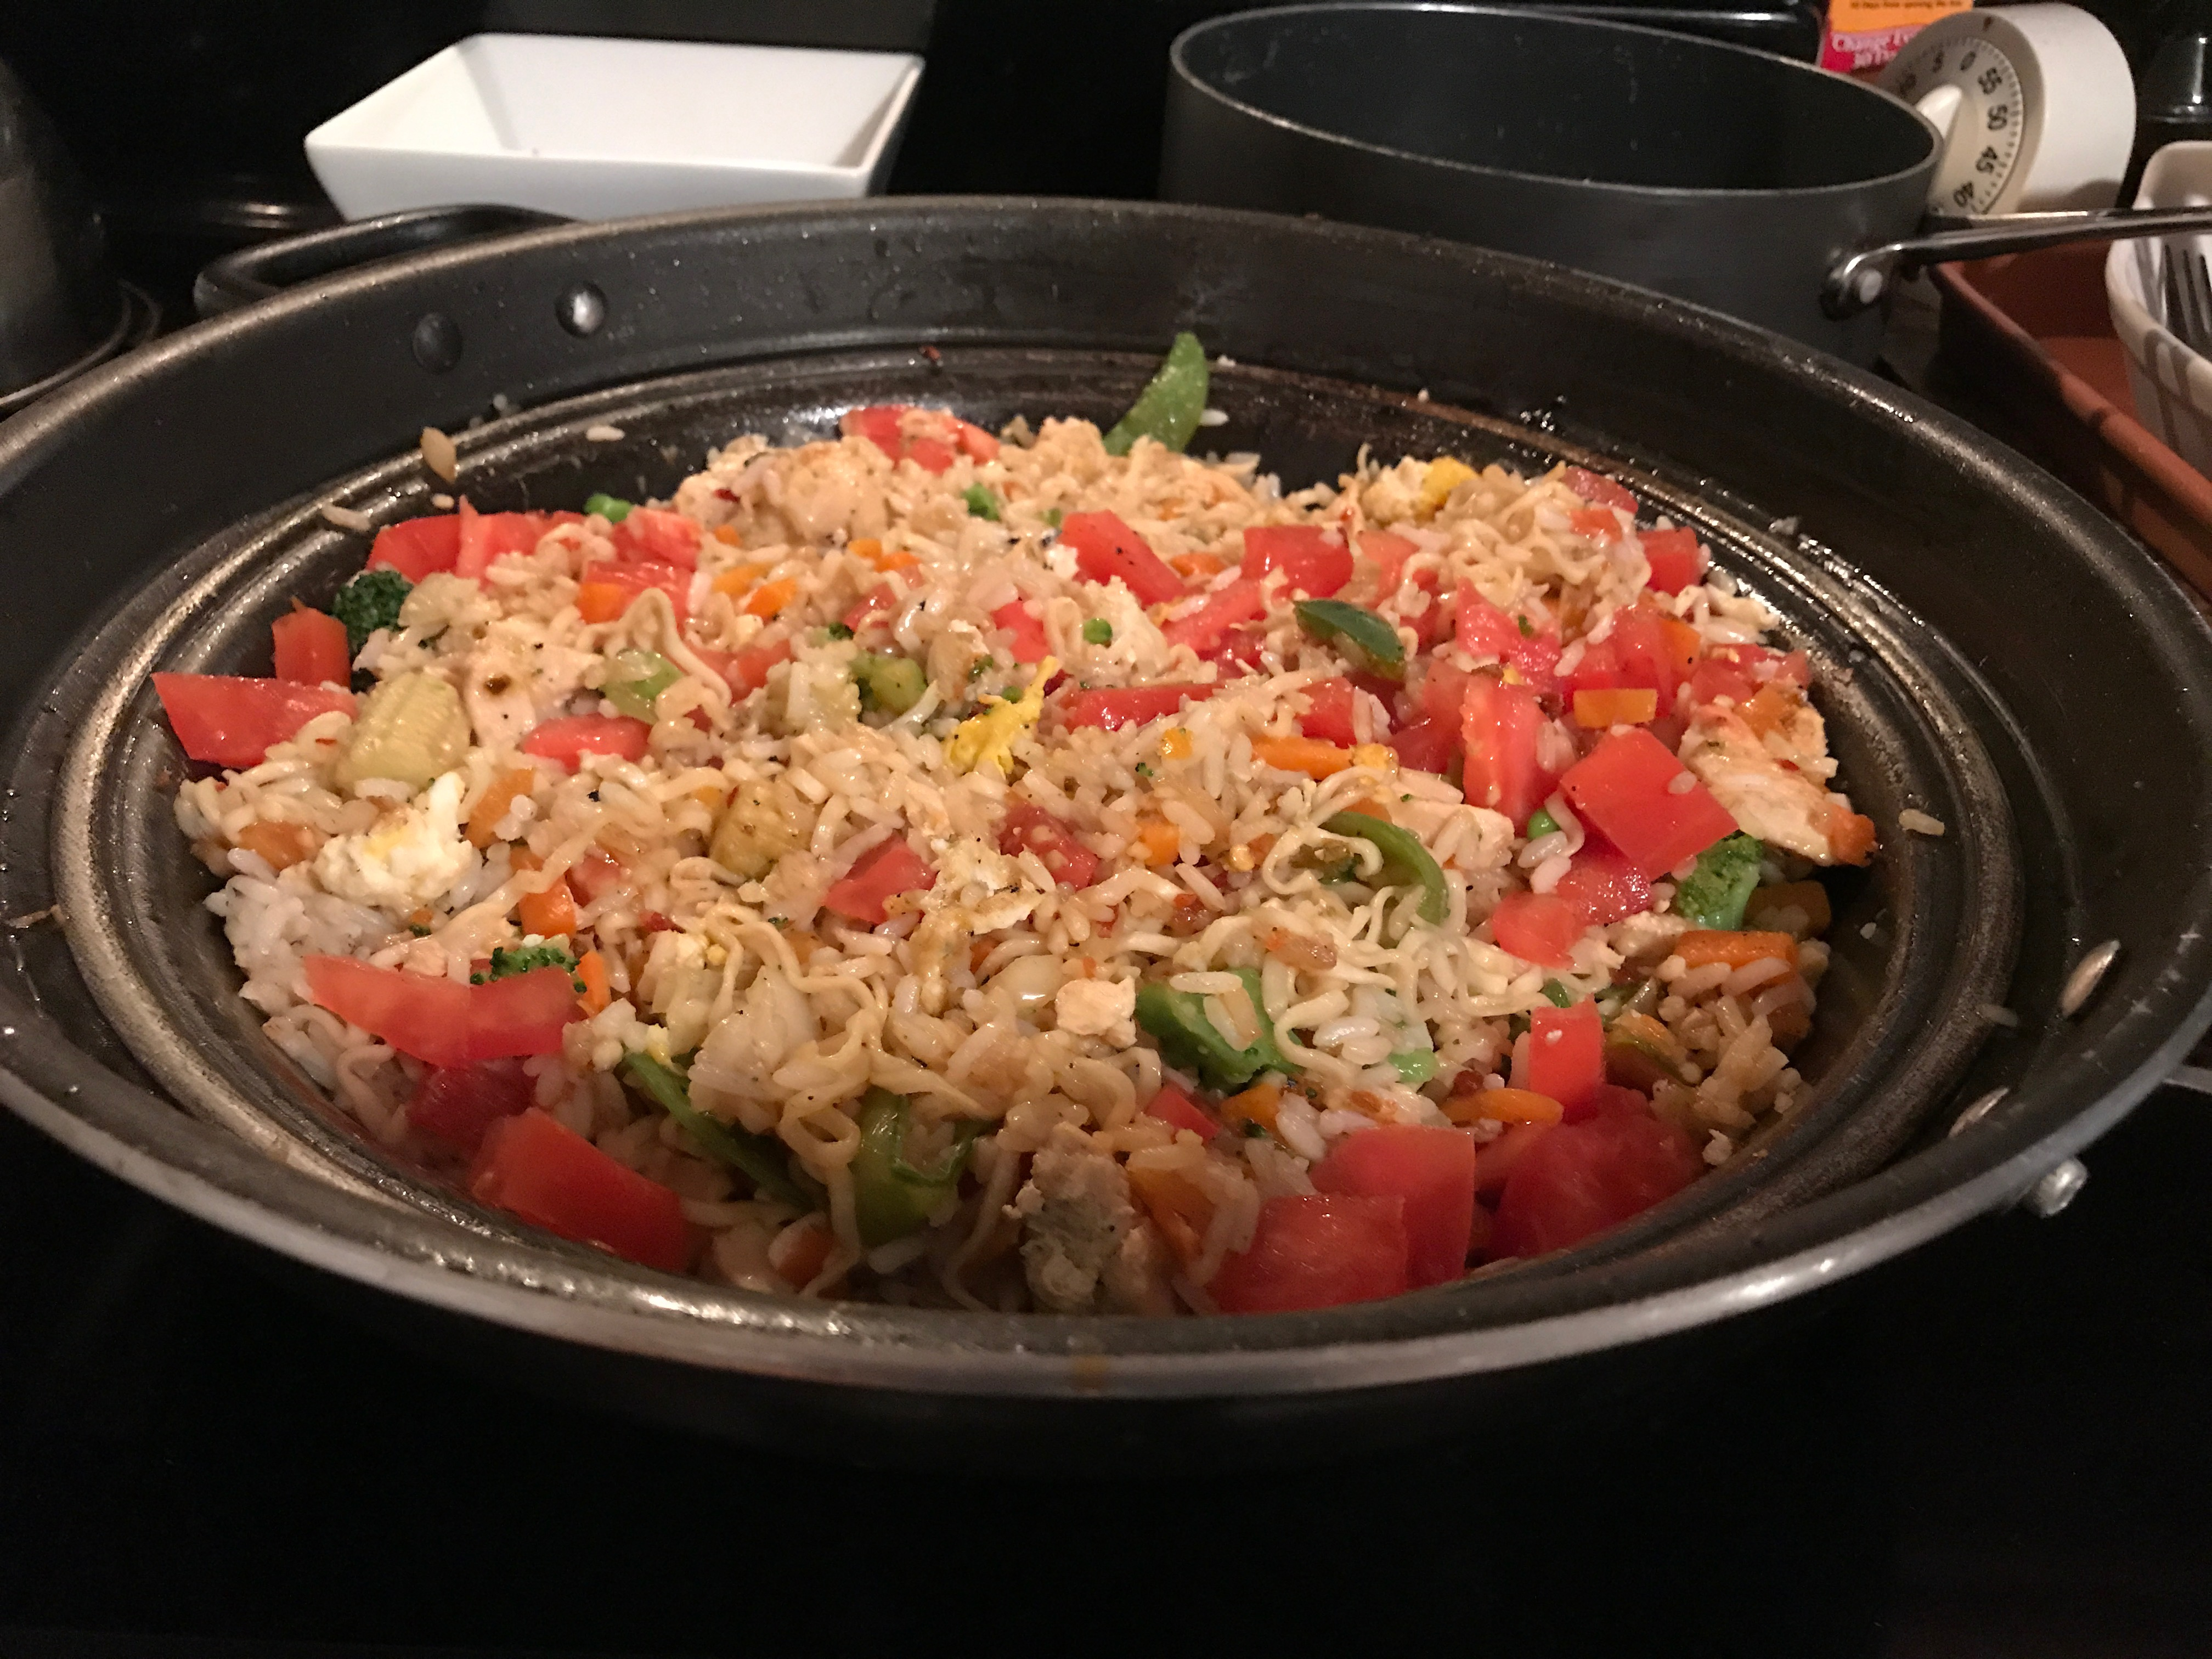 Making My Award-Winning Chicken Fried Rice